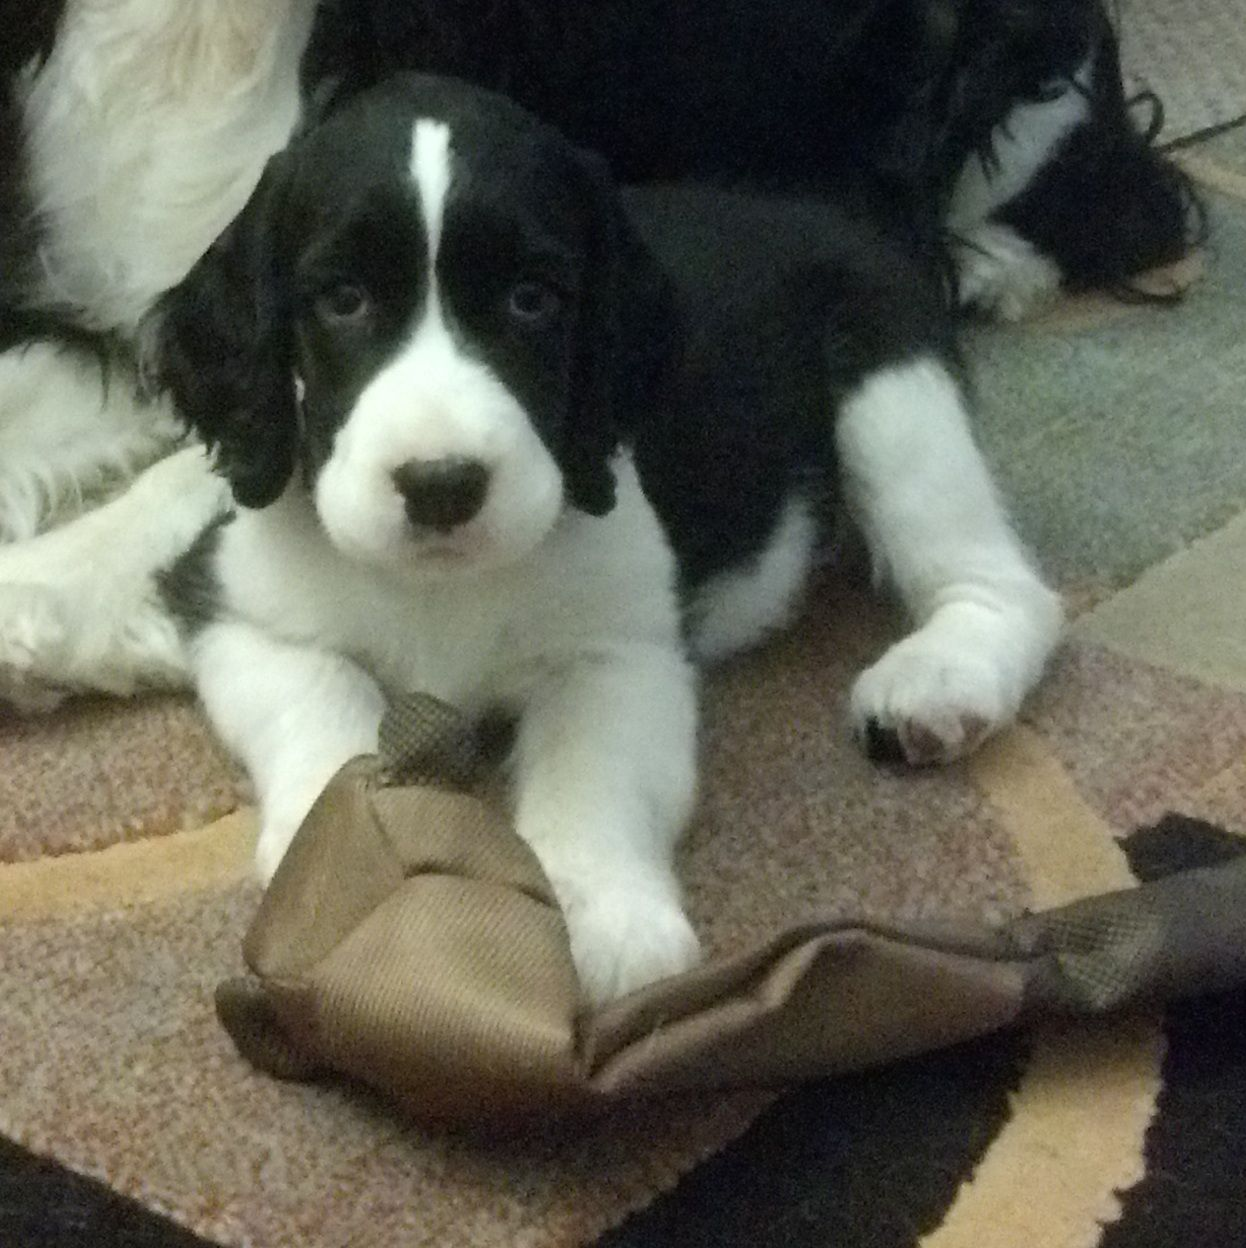 English Springer Spaniel Puppy Adorable I Bet This Is What Reese